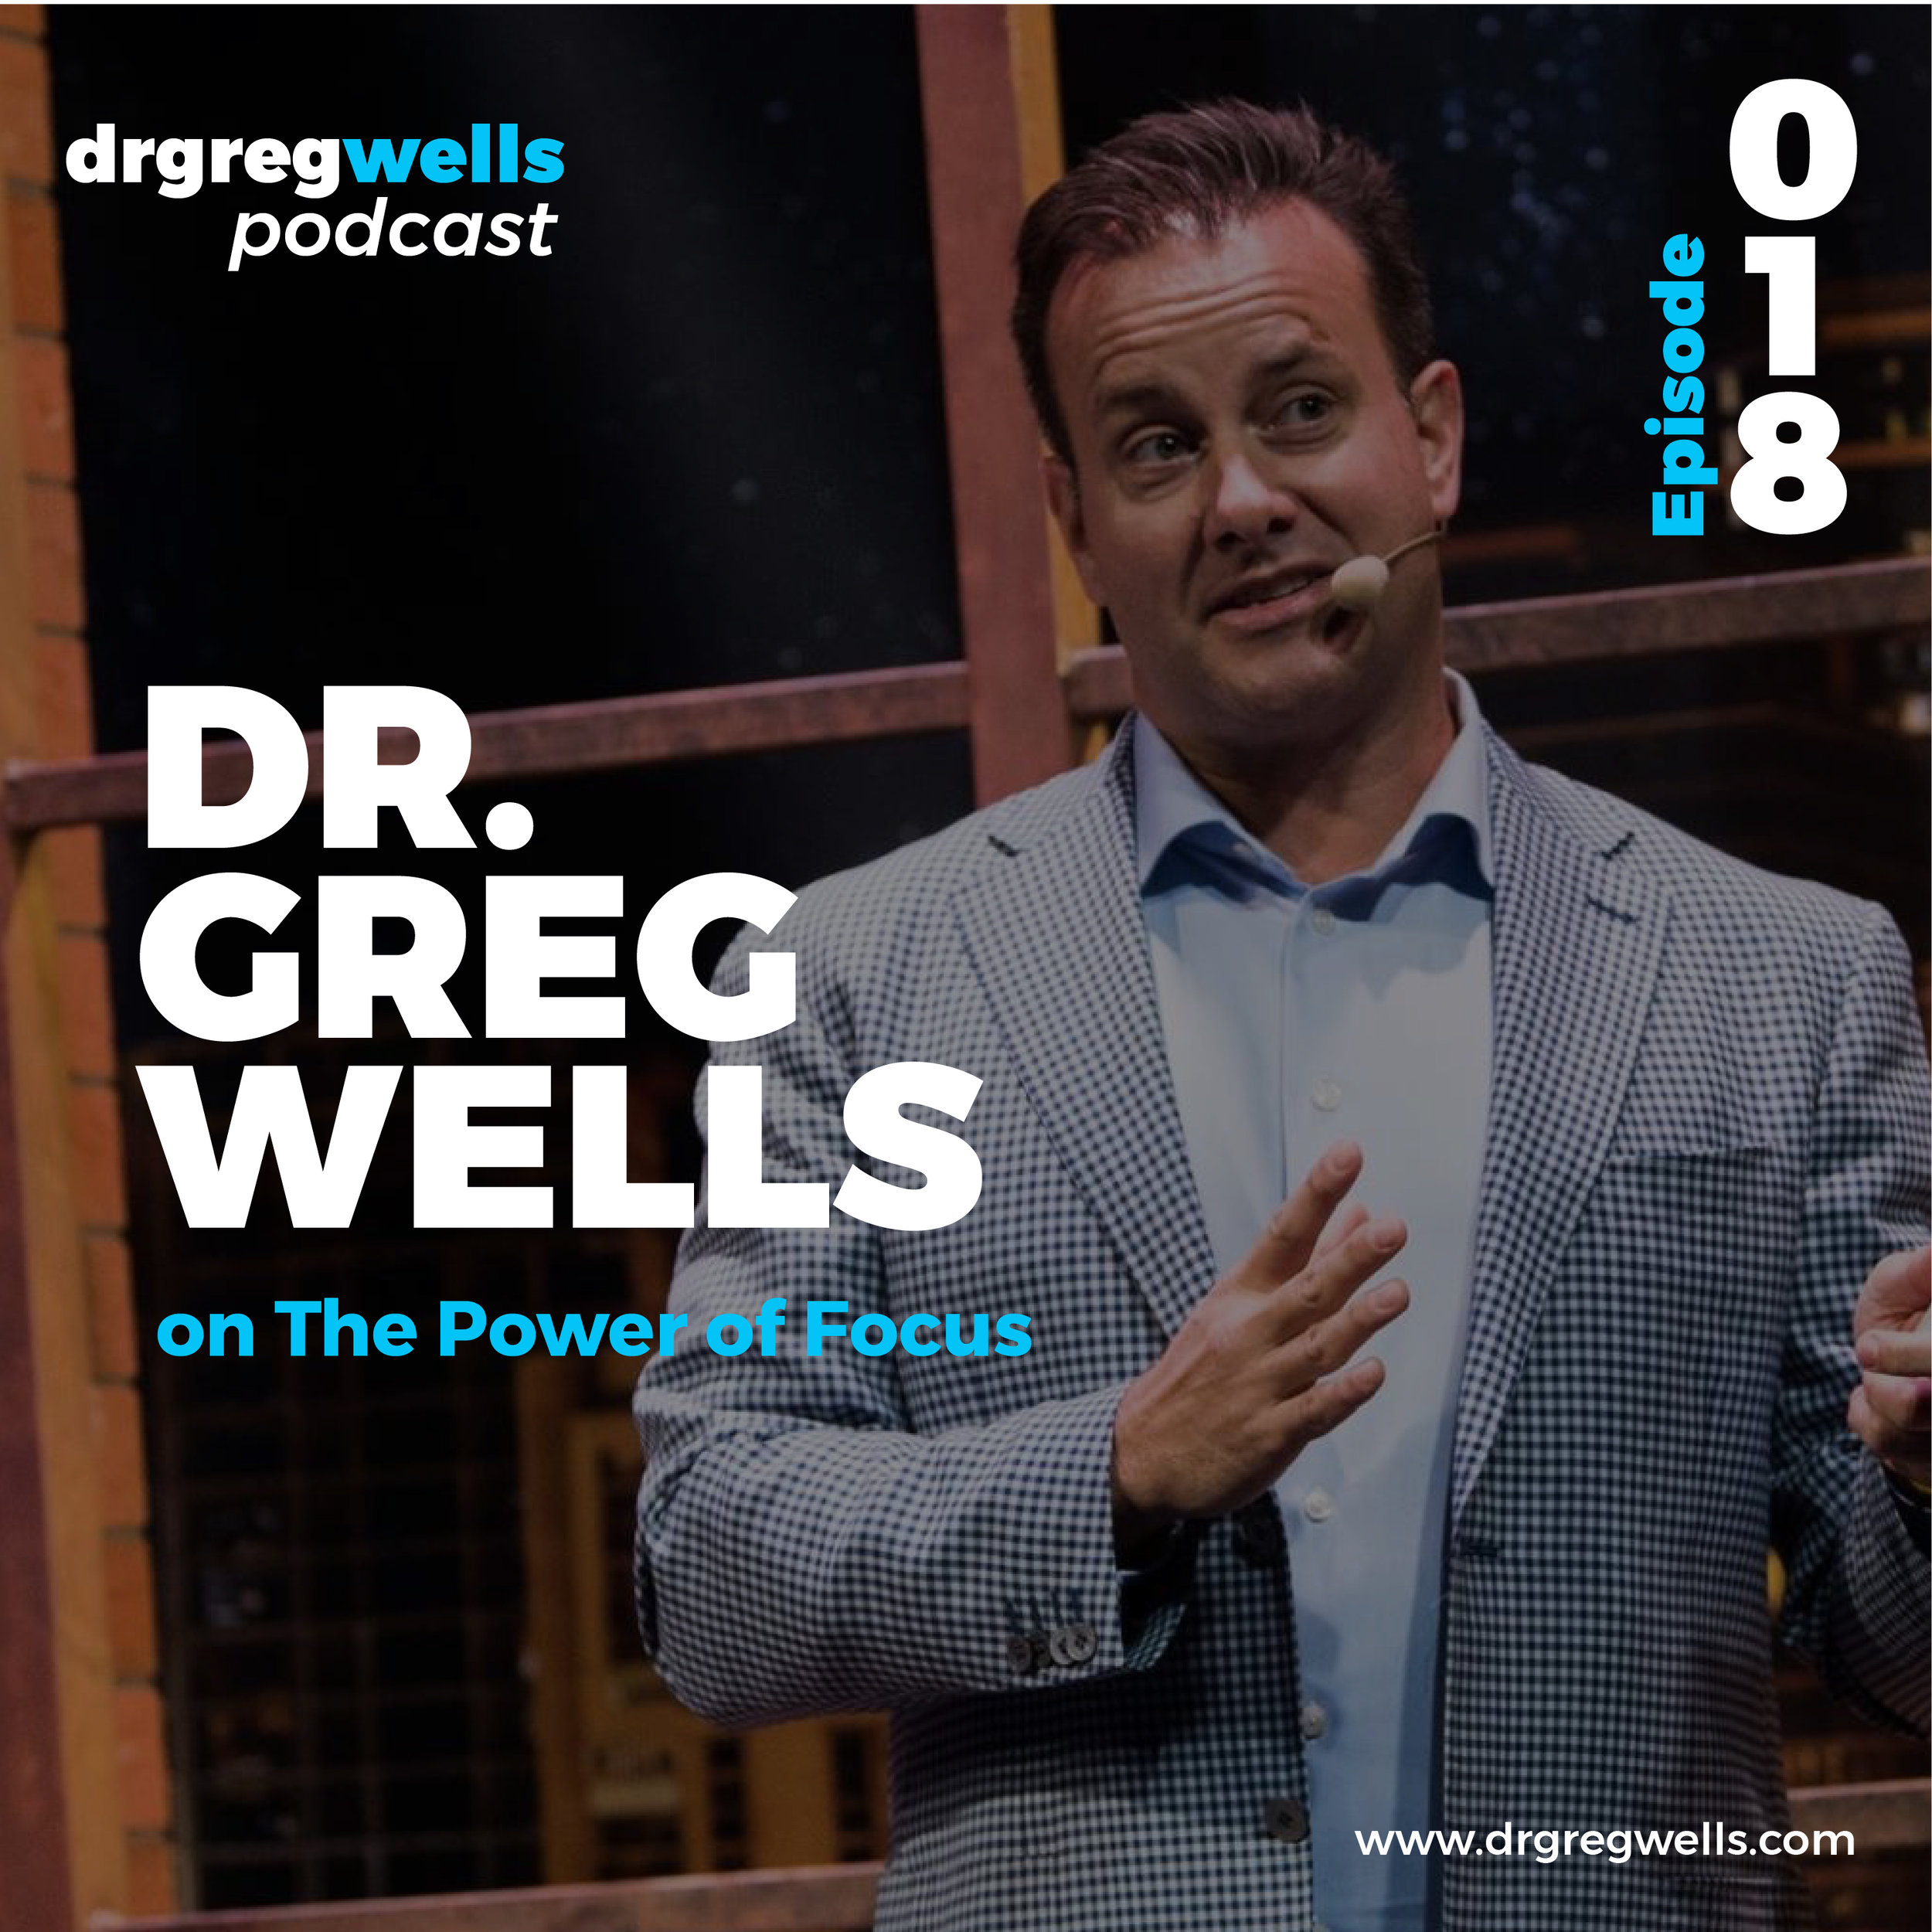 Dr Greg Wells Podcast Guest EP 1 - 32-18.jpg